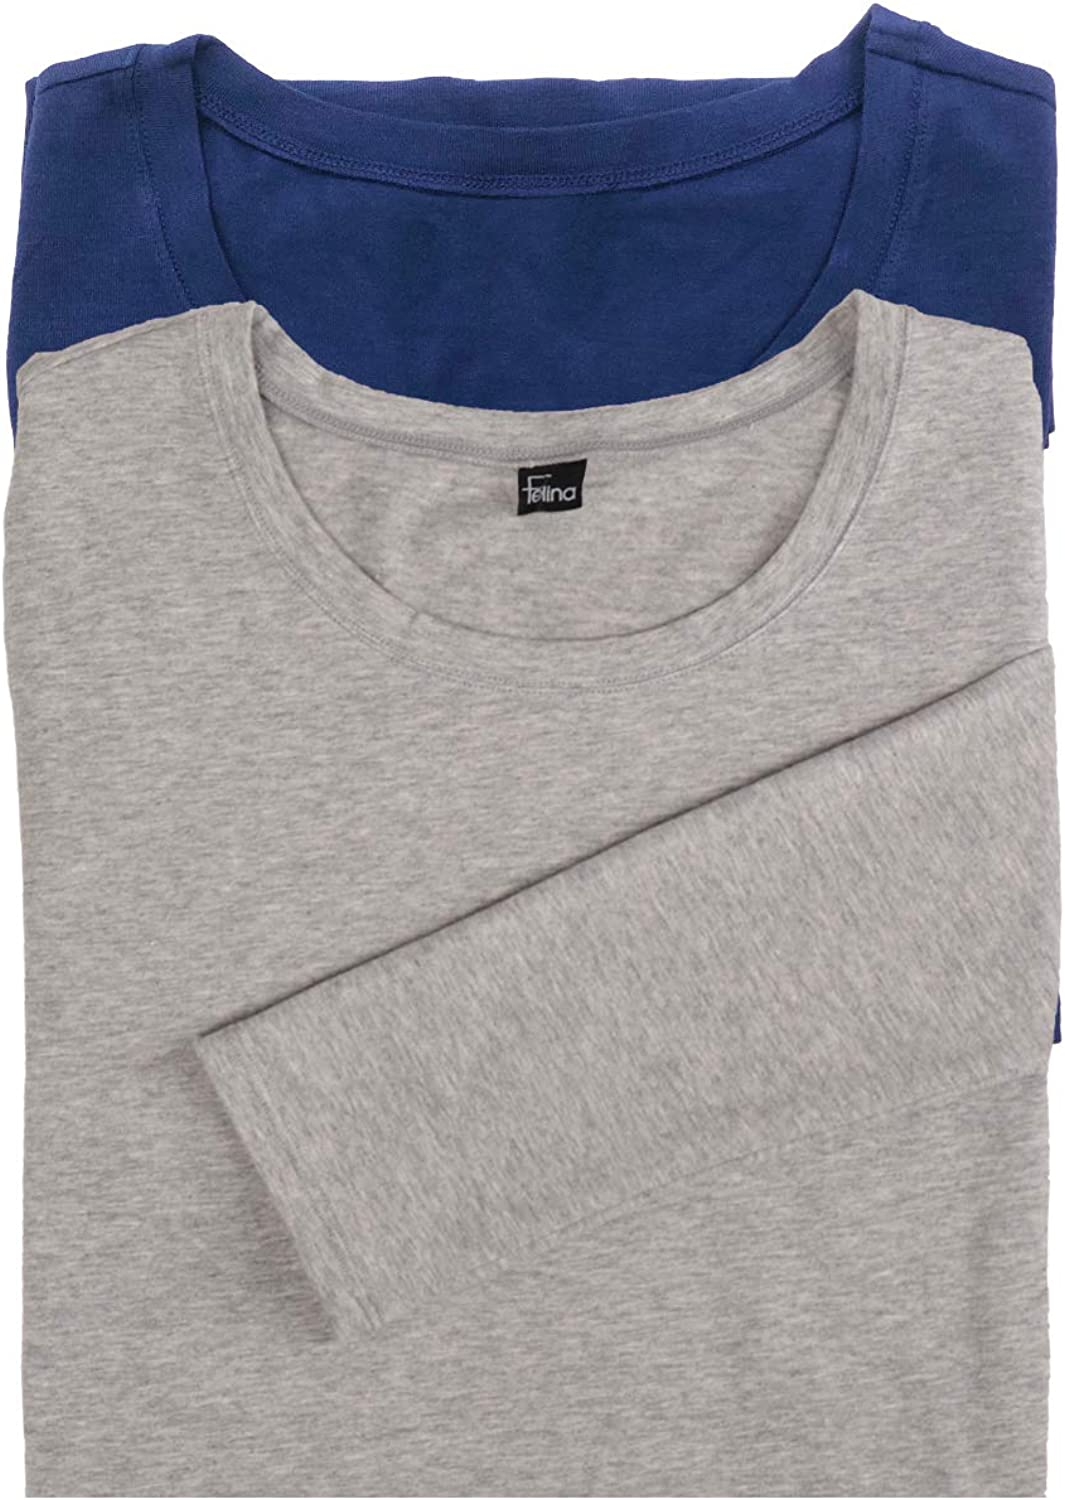 Felina SEAL limited product Key Item Long Sleeve Outlet SALE Crew Modal Neck Tee 2 Cotton